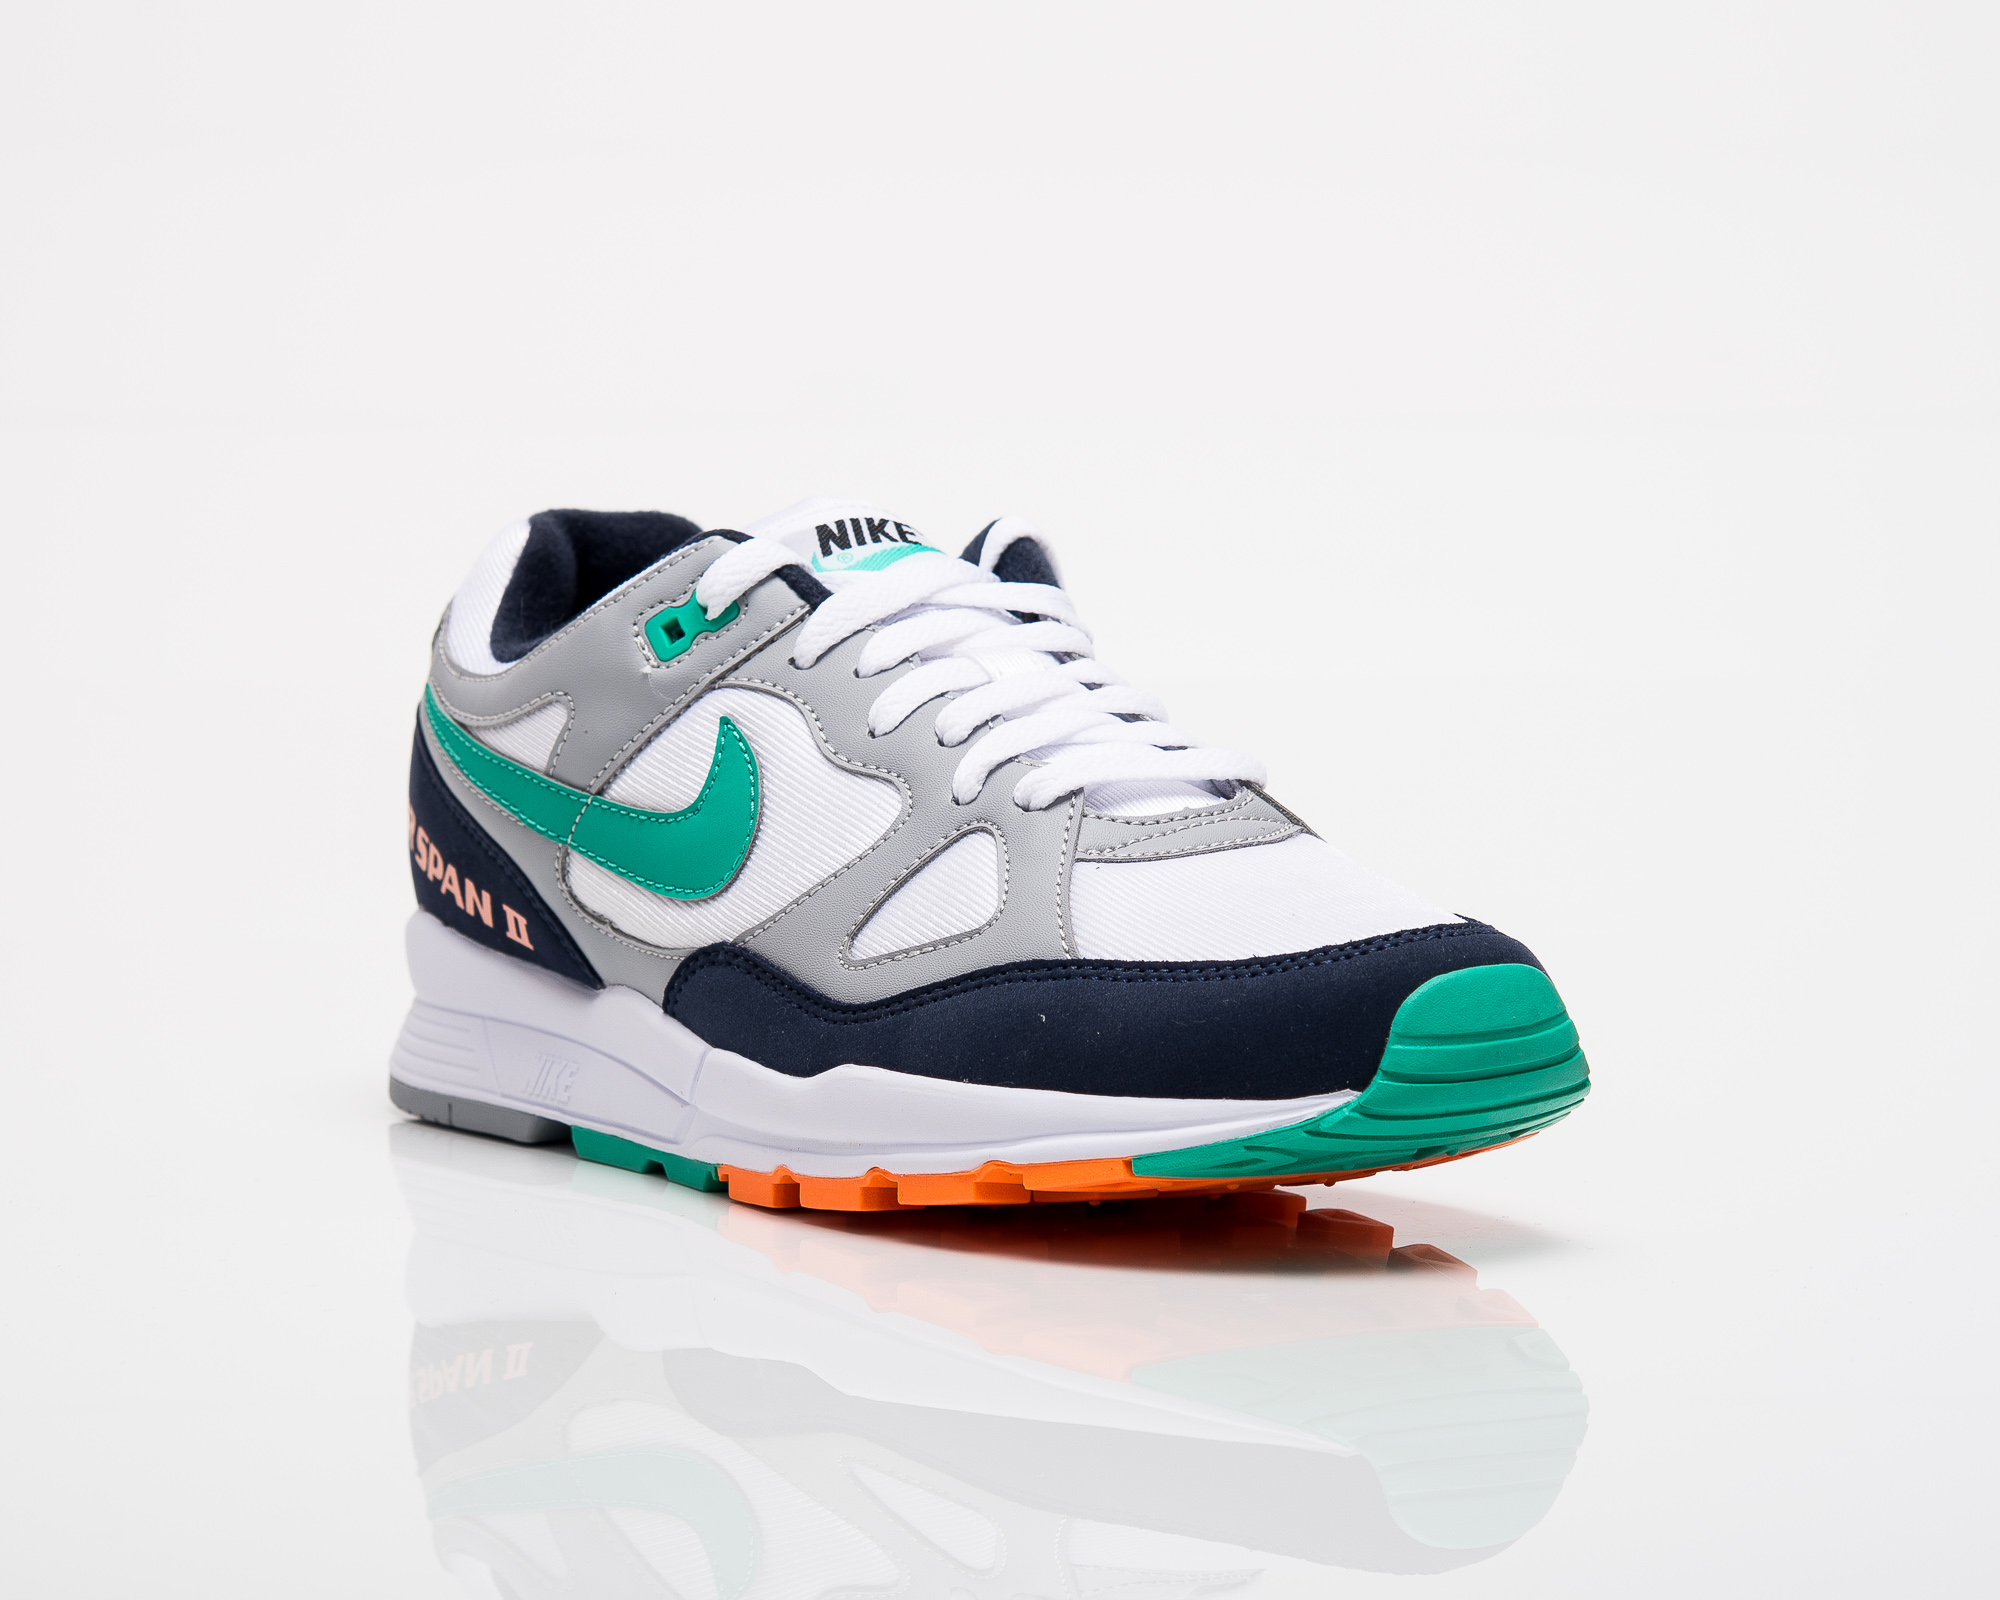 301560bf5c5 Nike Air Span II - Shoes Casual - Sporting goods